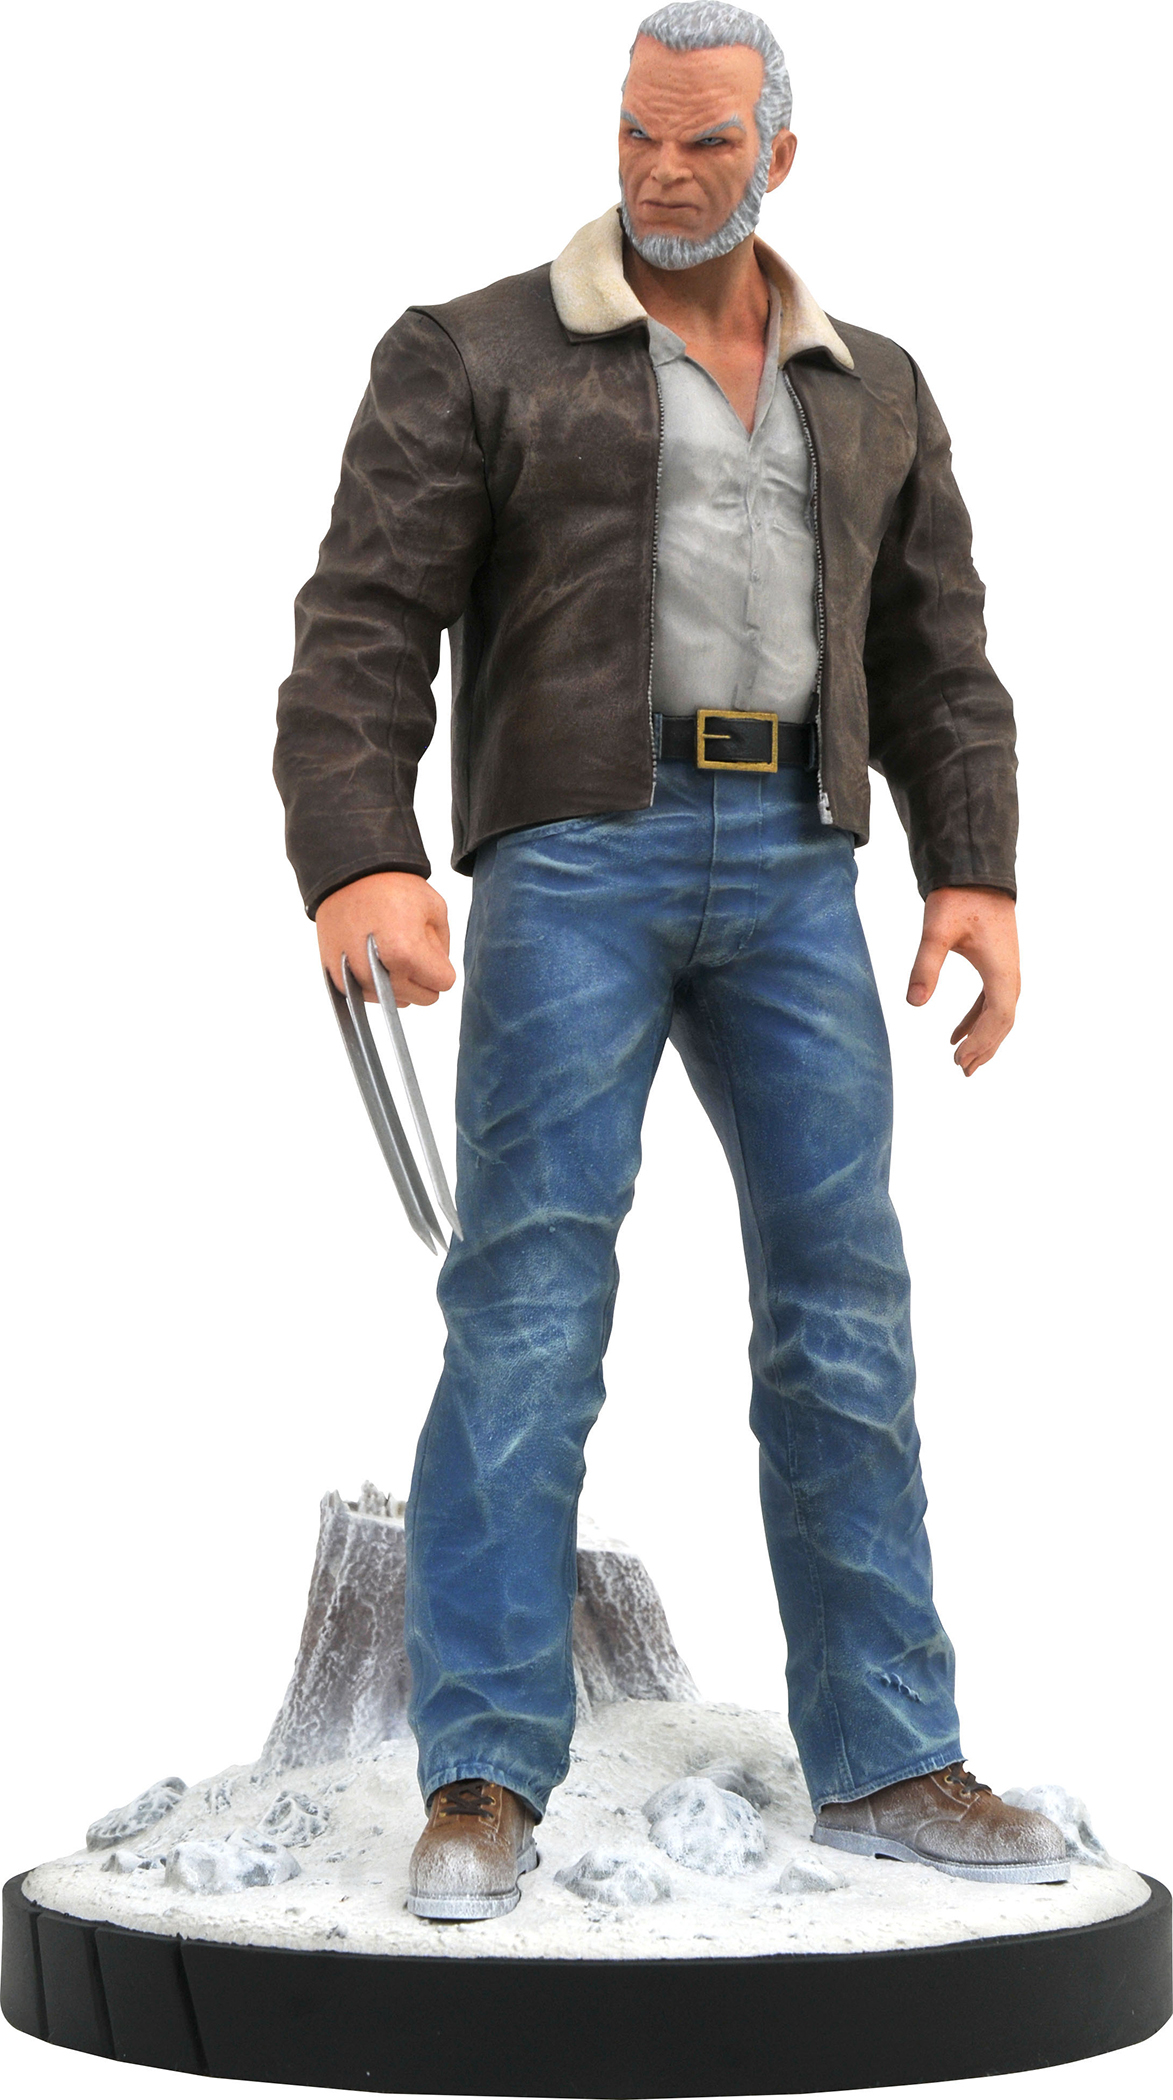 Pre-Order Diamond Marvel Premier Collection Old Man Logan Statue